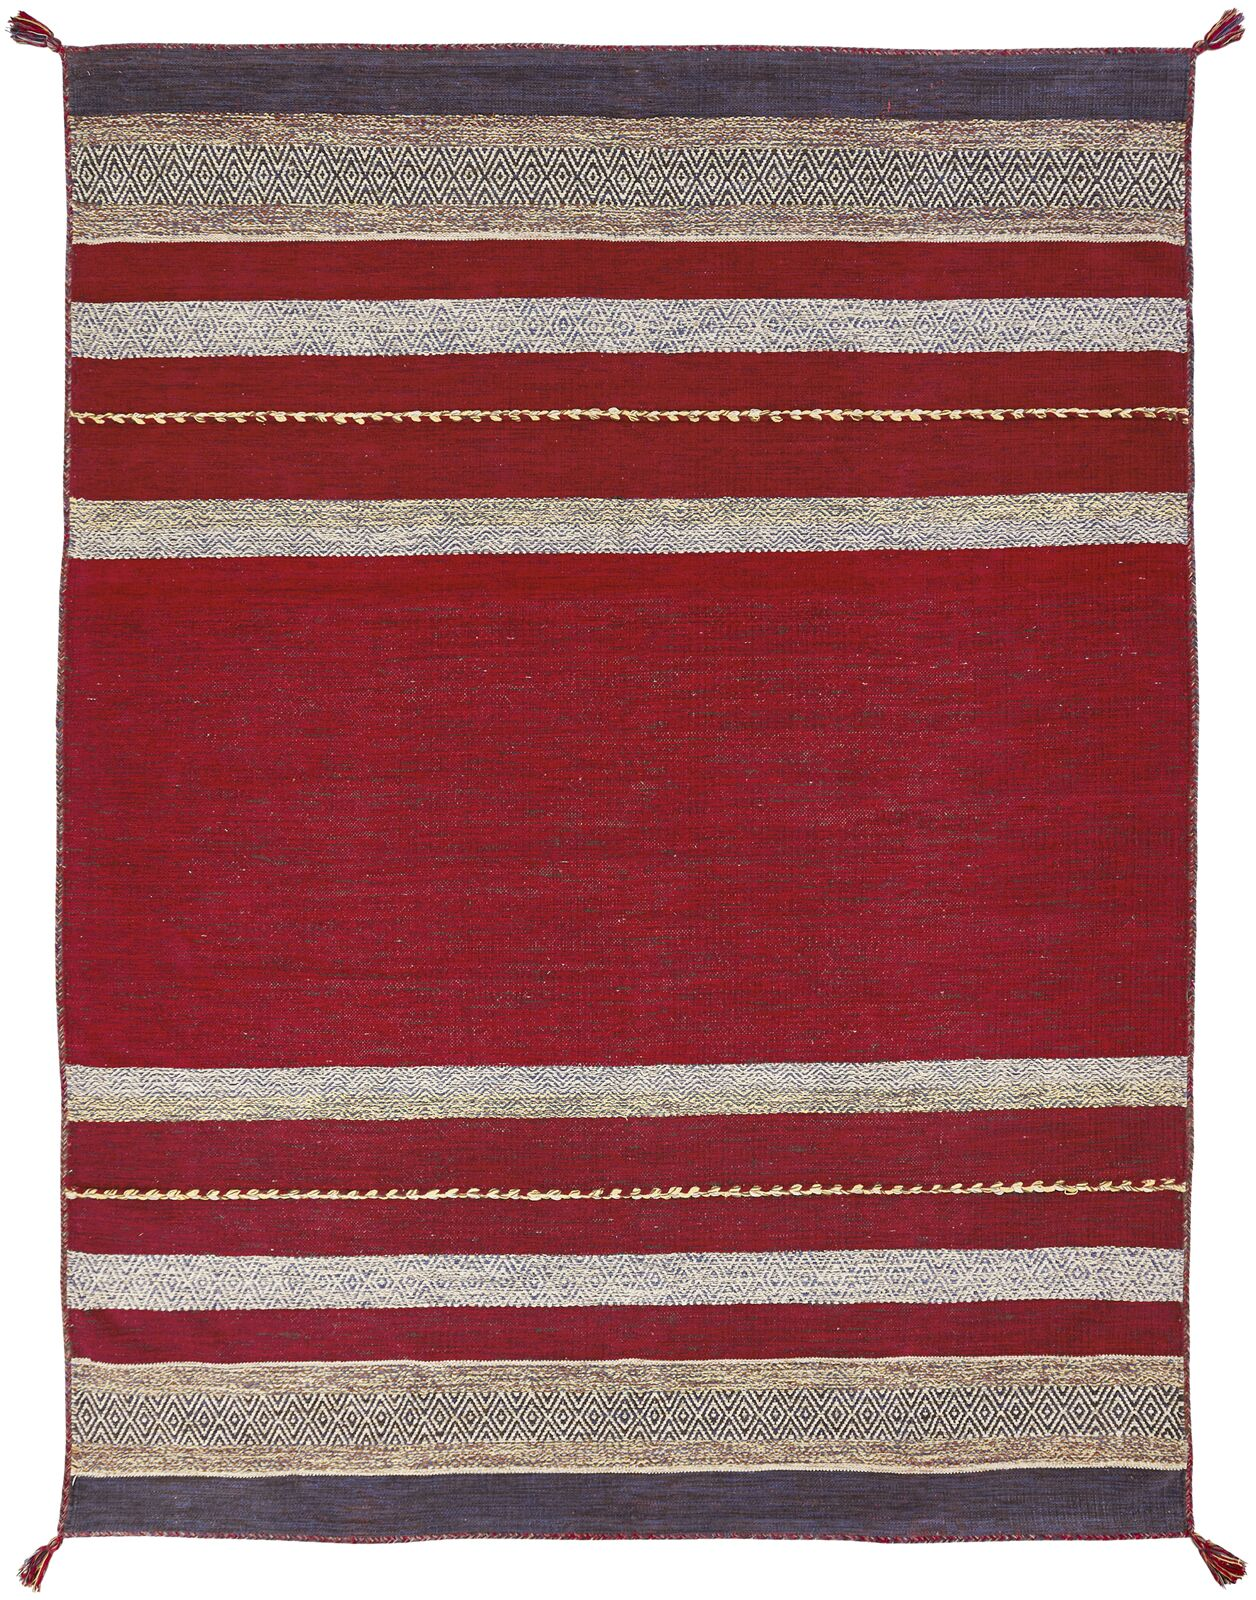 Gueye Hand Knotted Cotton Red Area Rug Rug Size: Rectangle 9'6